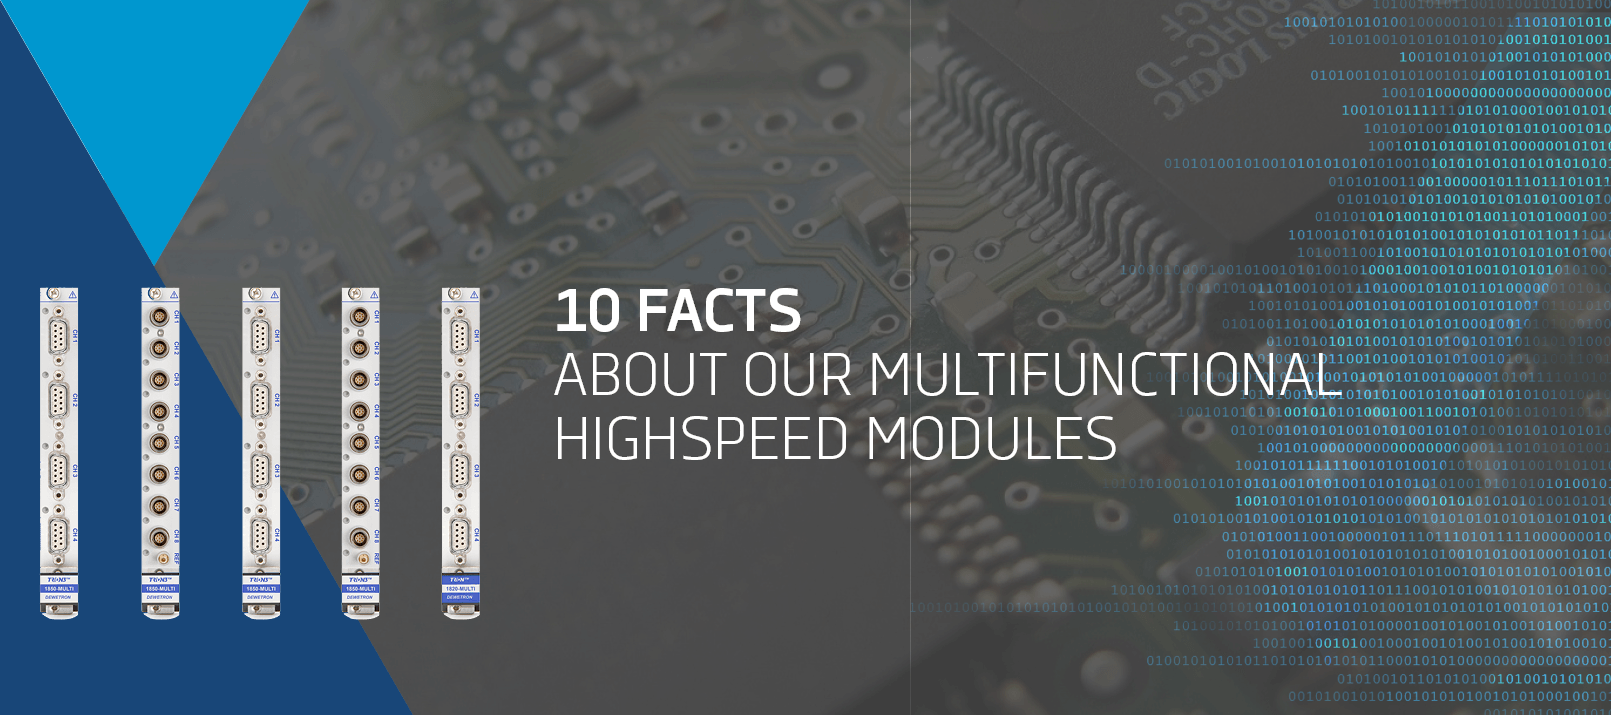 10-facts-about-the-multifunctional-highspeed-modules